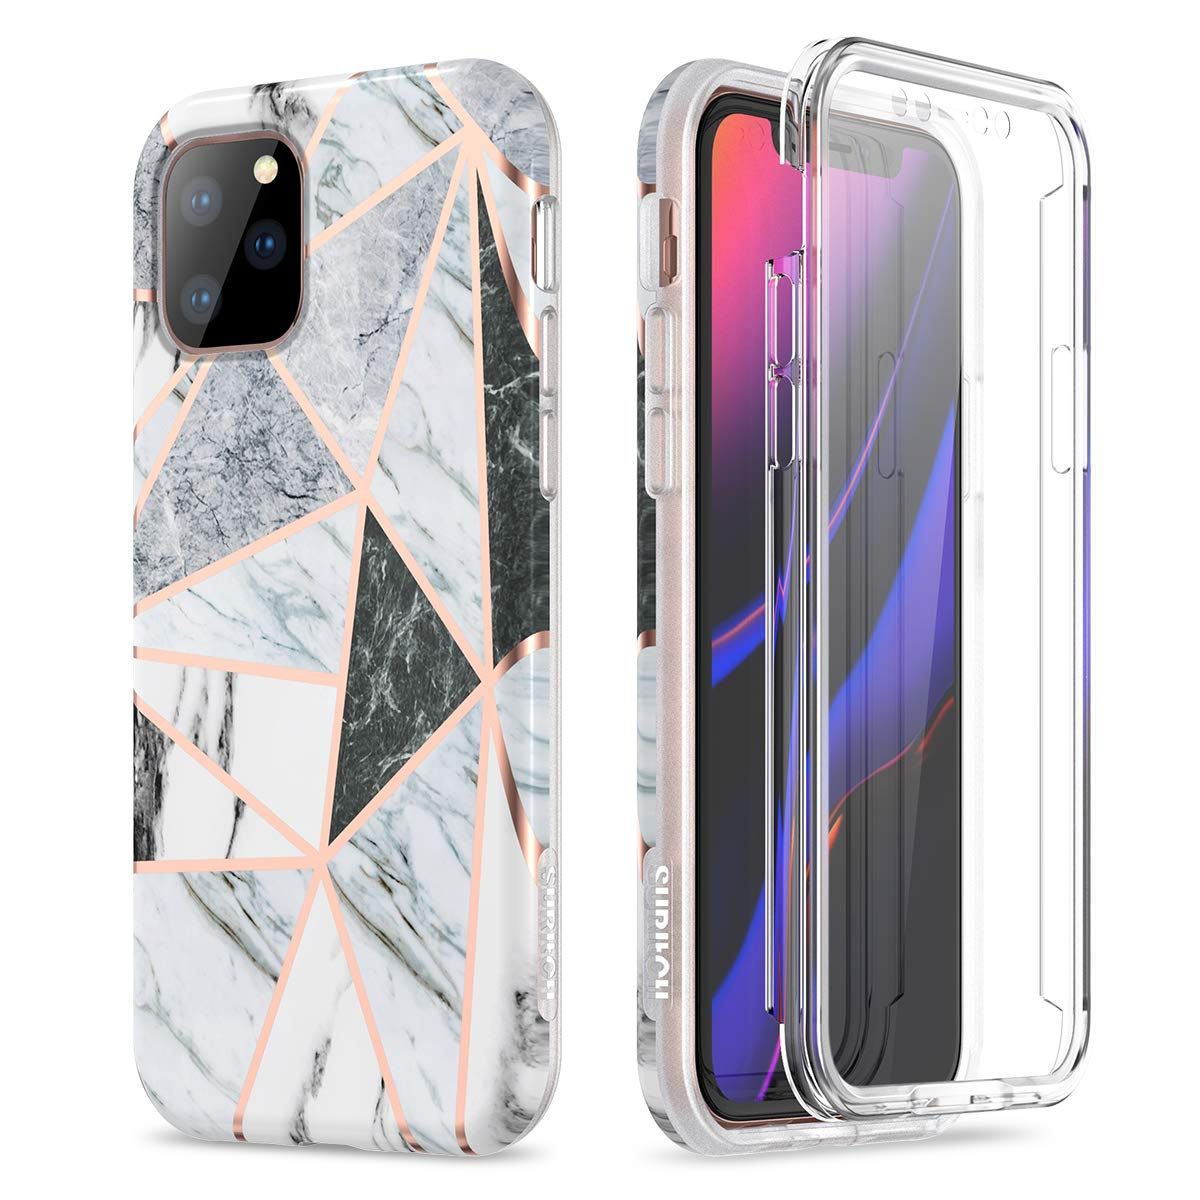 SURITCH Marble iPhone 11 Pro Max Case, [Built-in Screen Protector] Full-Body Protection Hard PC Bumper + Glossy Soft TPU Rubber Gel Shockproof Cover for iPhone 11 Pro Max 6.5 inch(Cute Geometric)